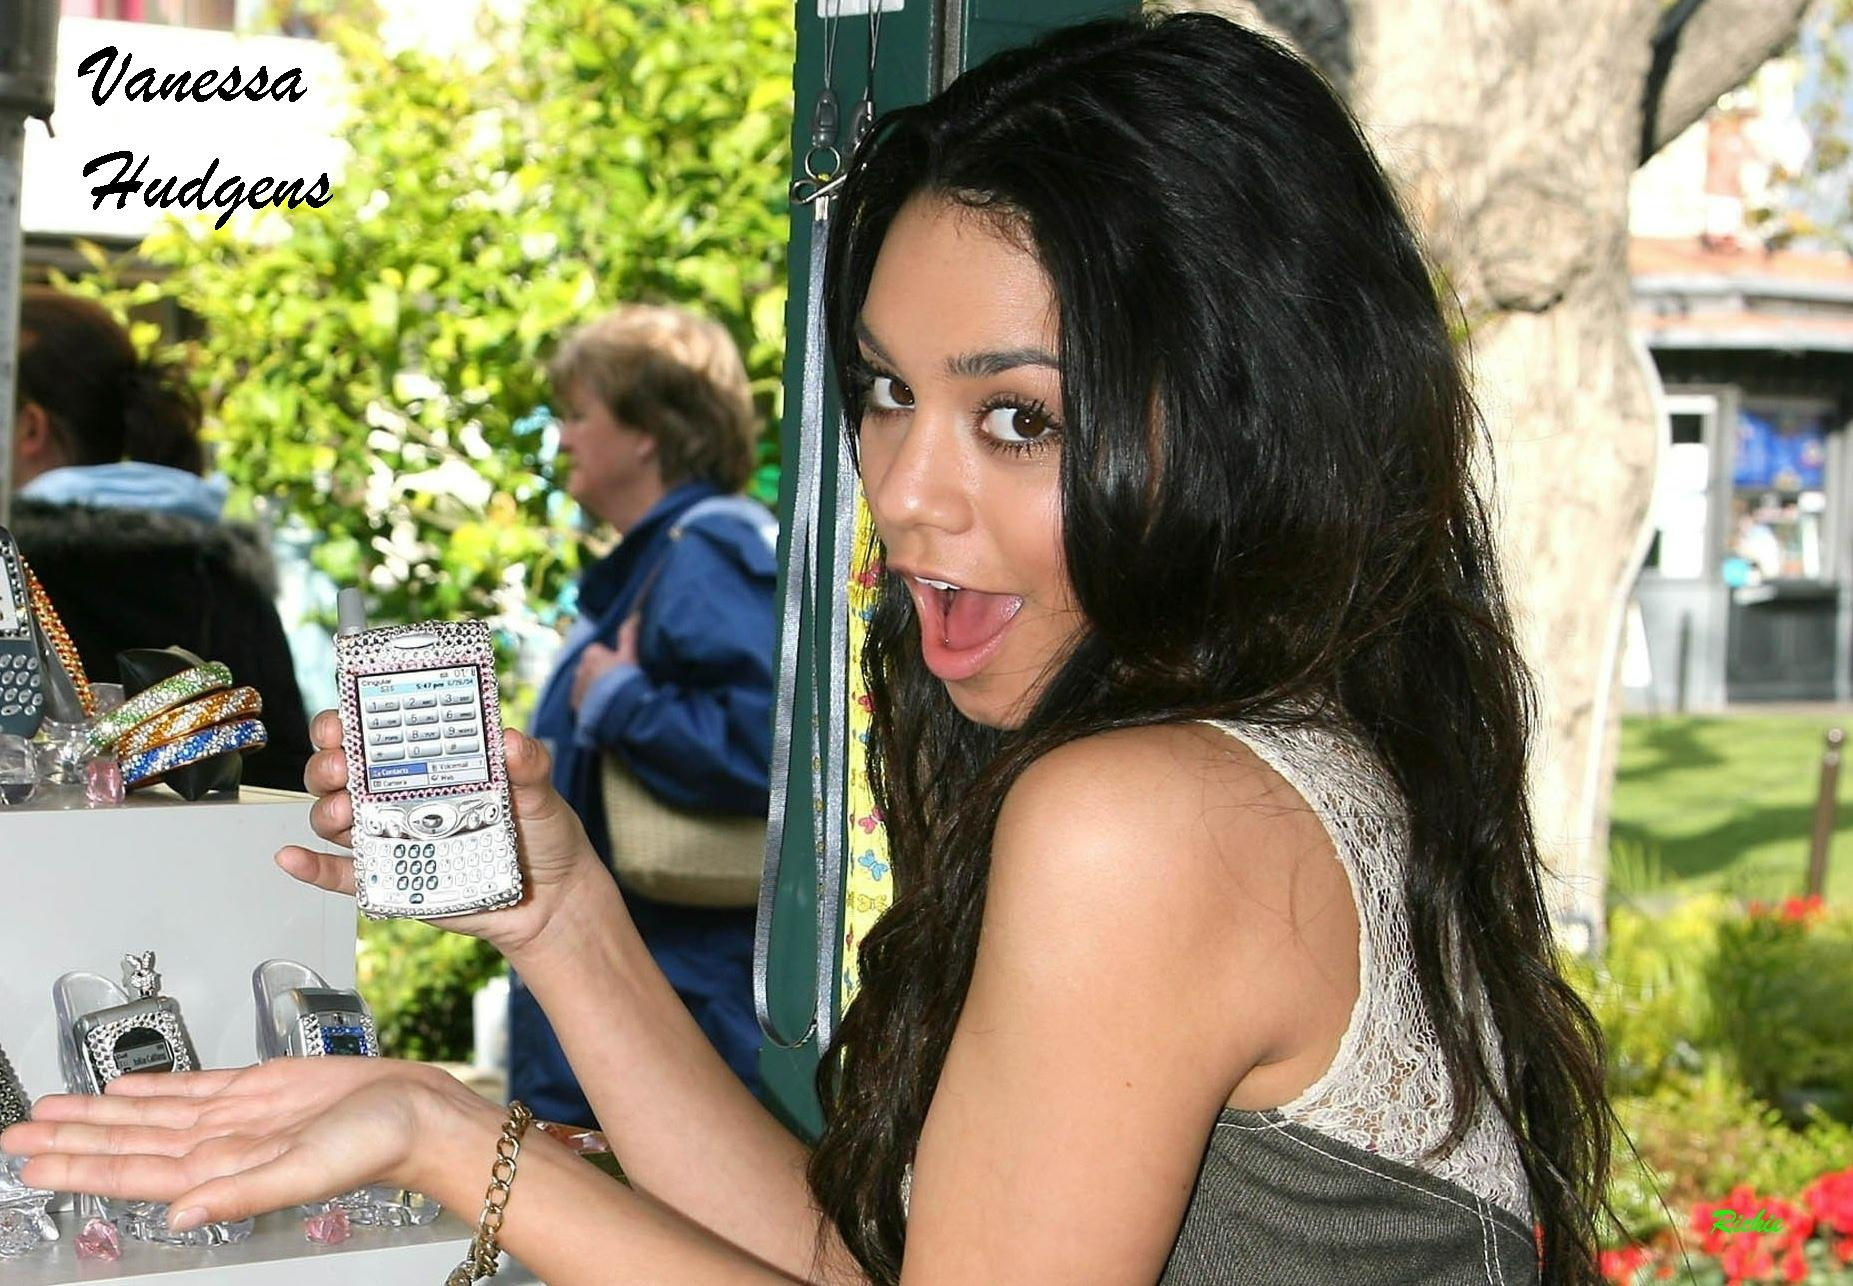 Women People vanessa hudgens HD Wallpaper